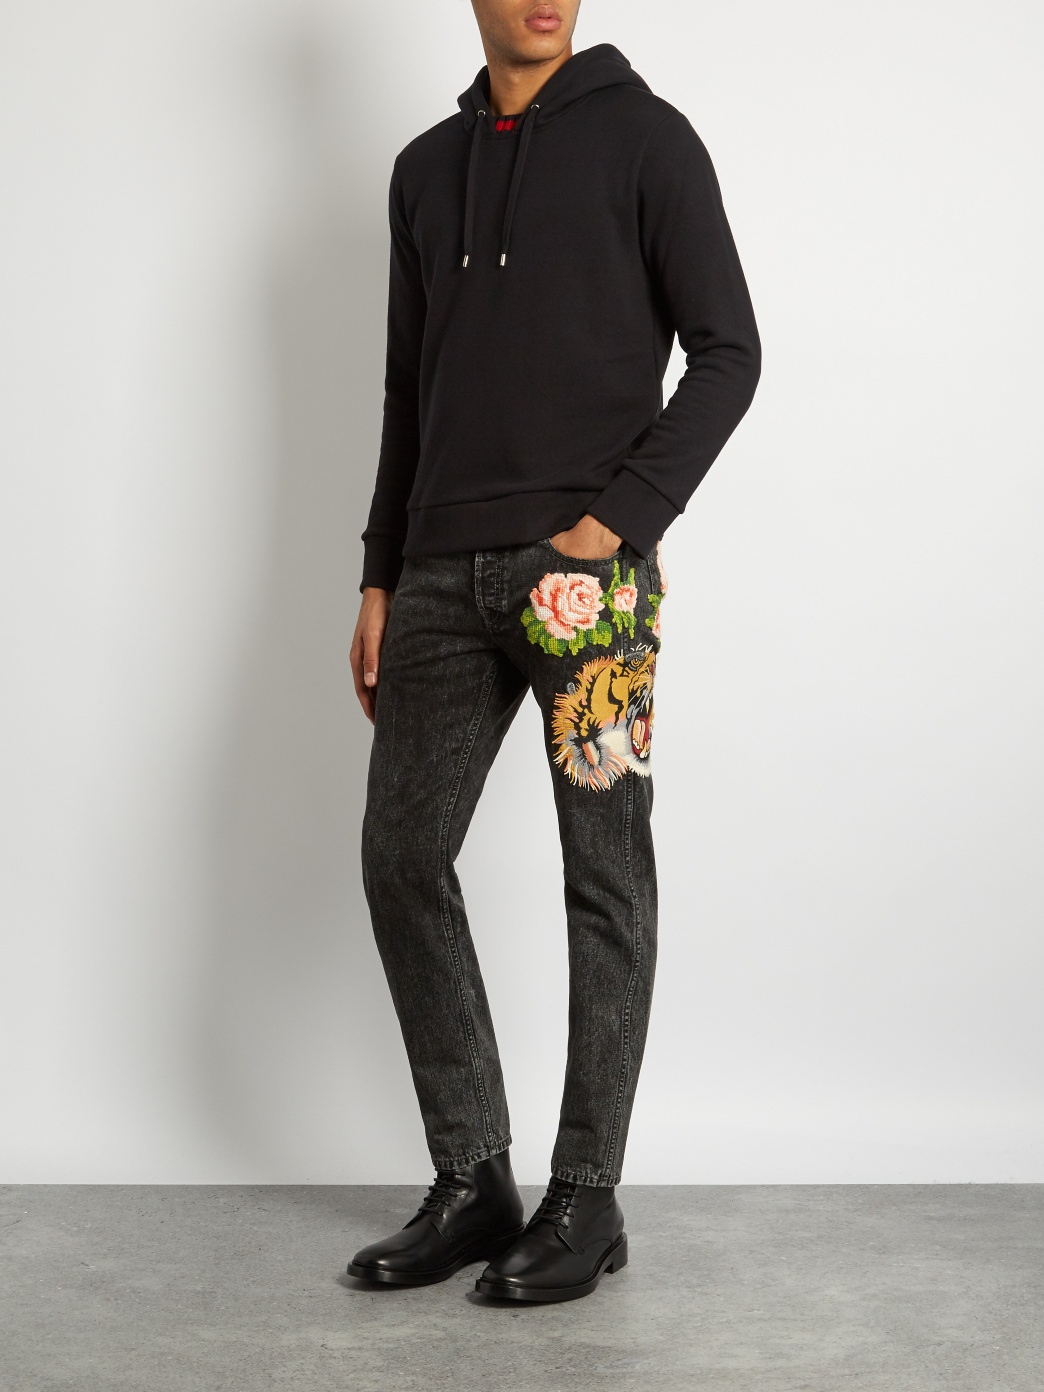 outfit_1076948_1